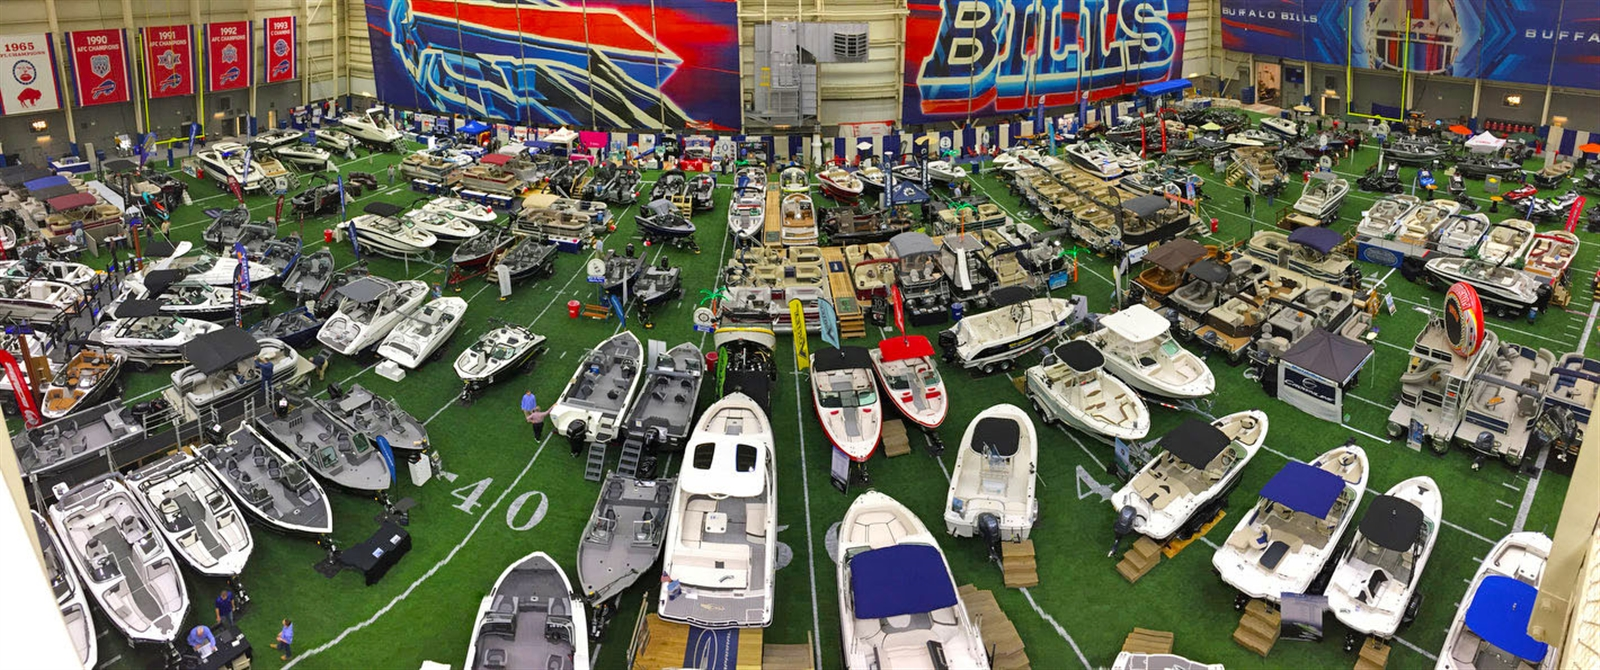 Scene from opening night at the 2017 WNY Boat Show.